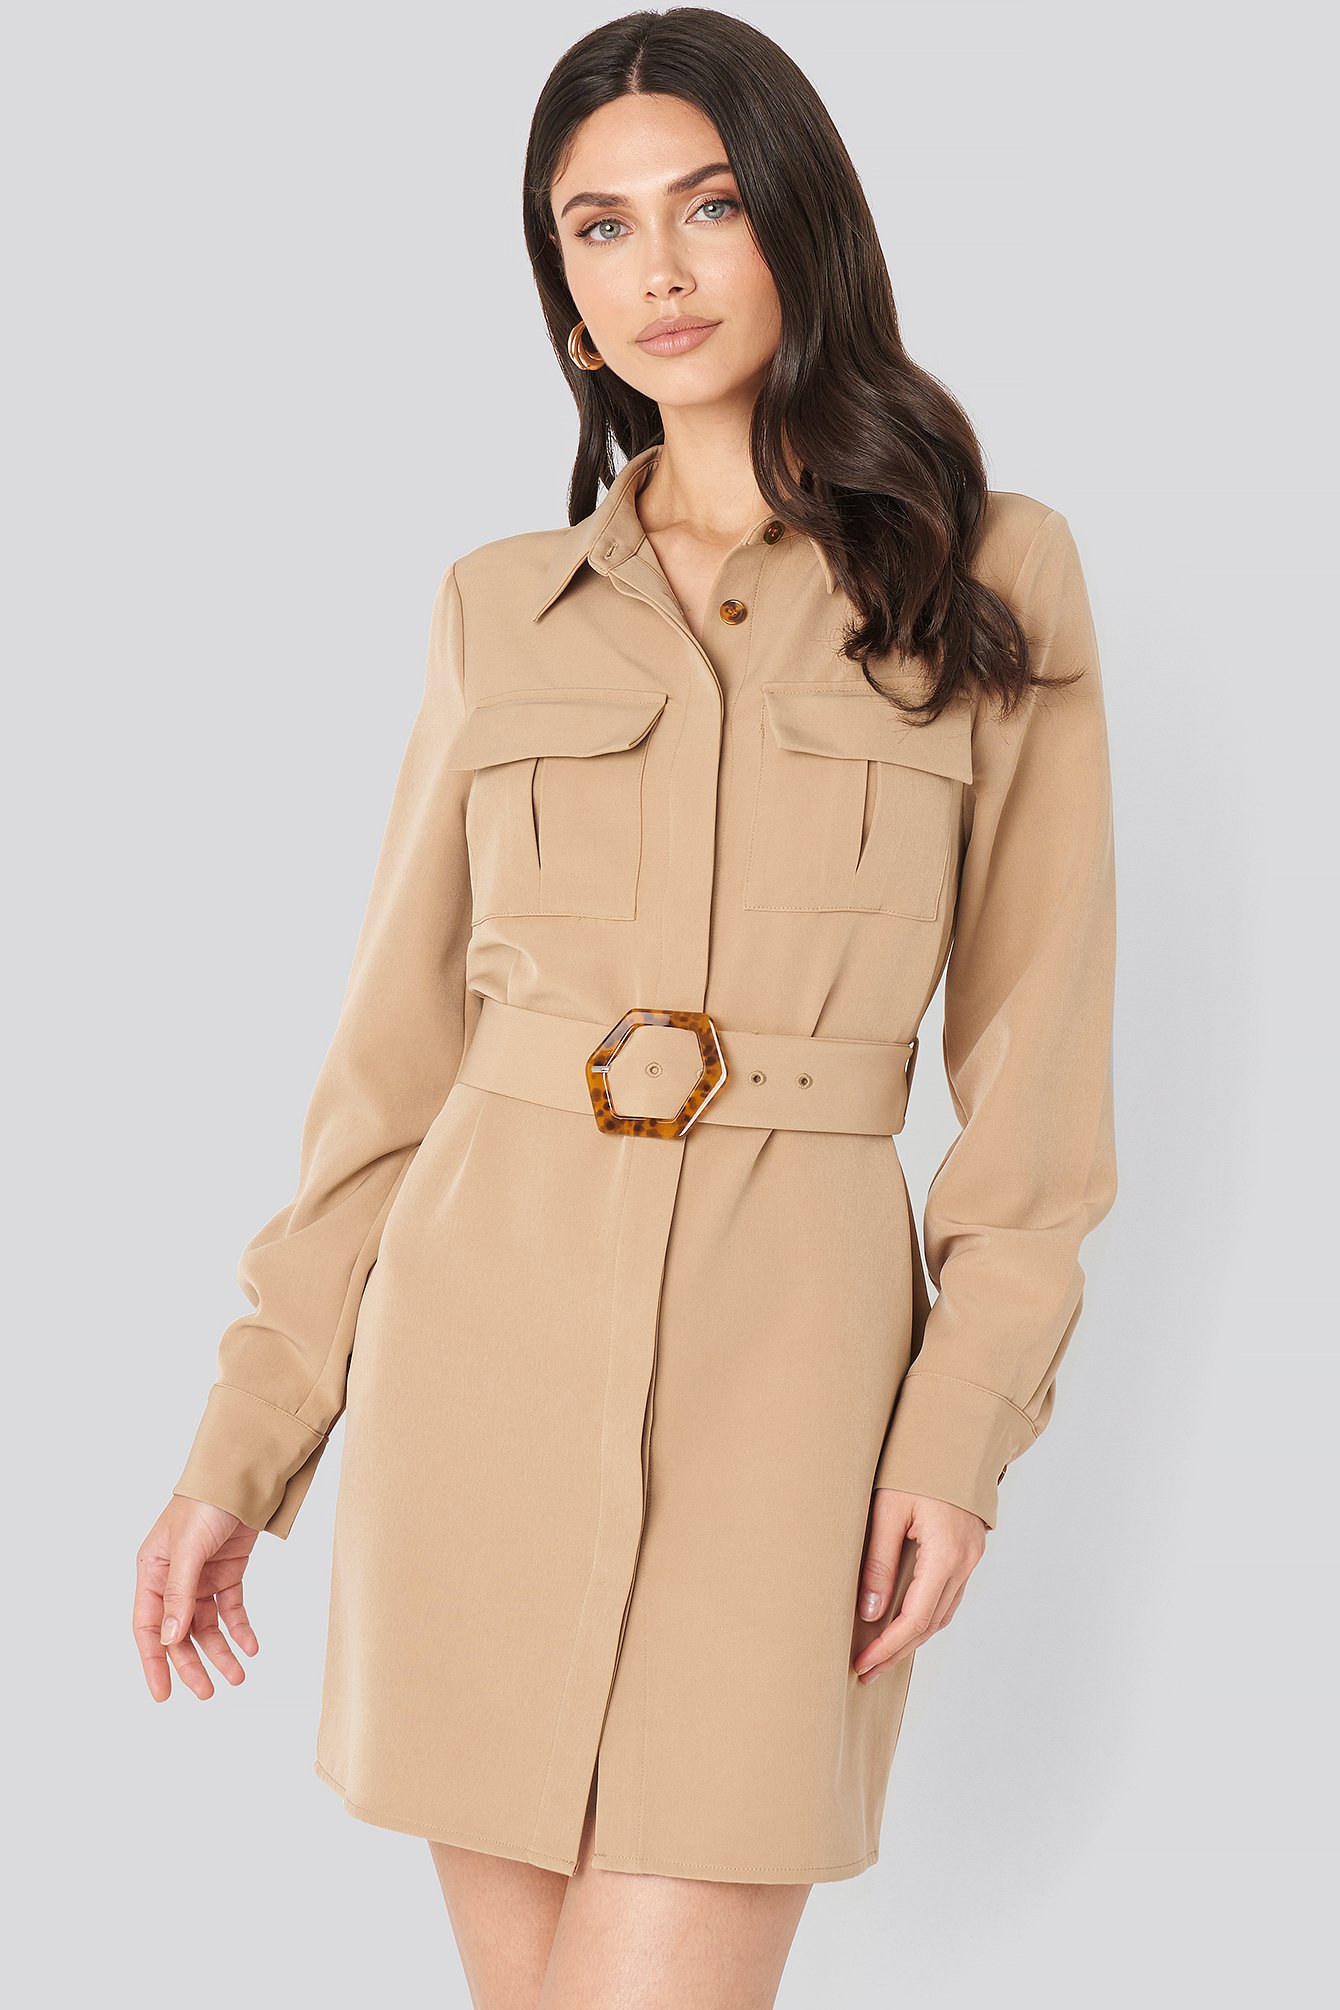 Belted Straight Fit Shirt Dress Beige by Na Kd Trend